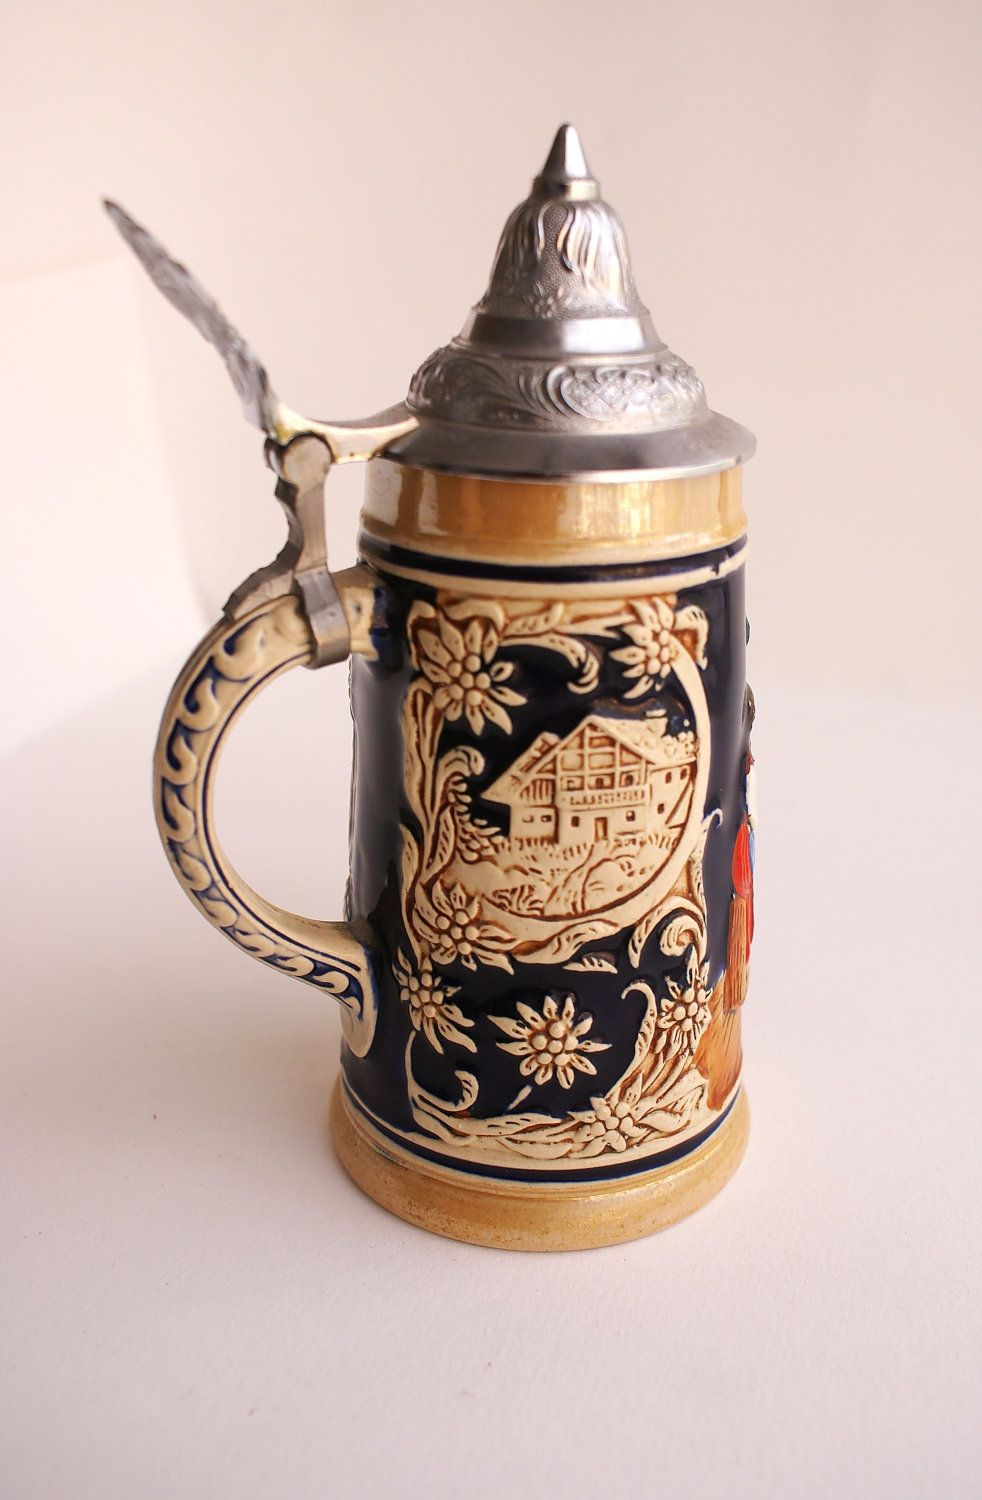 Collectable Ceramic German Beer Stein Mug with Pewter Lid. Etsy.